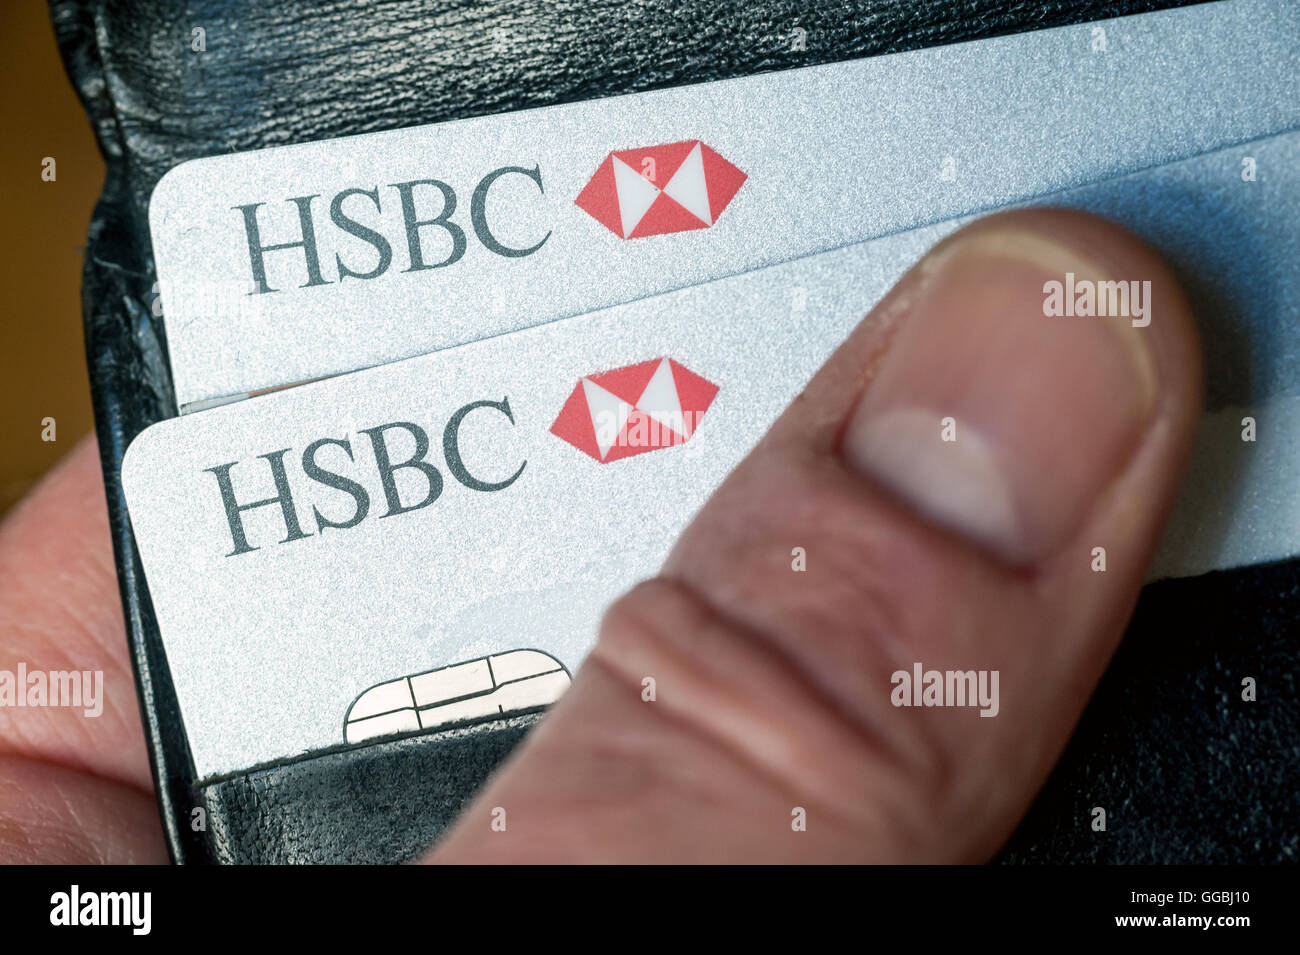 Signage and cheque books with logo from HSBC Bank. - Stock Image